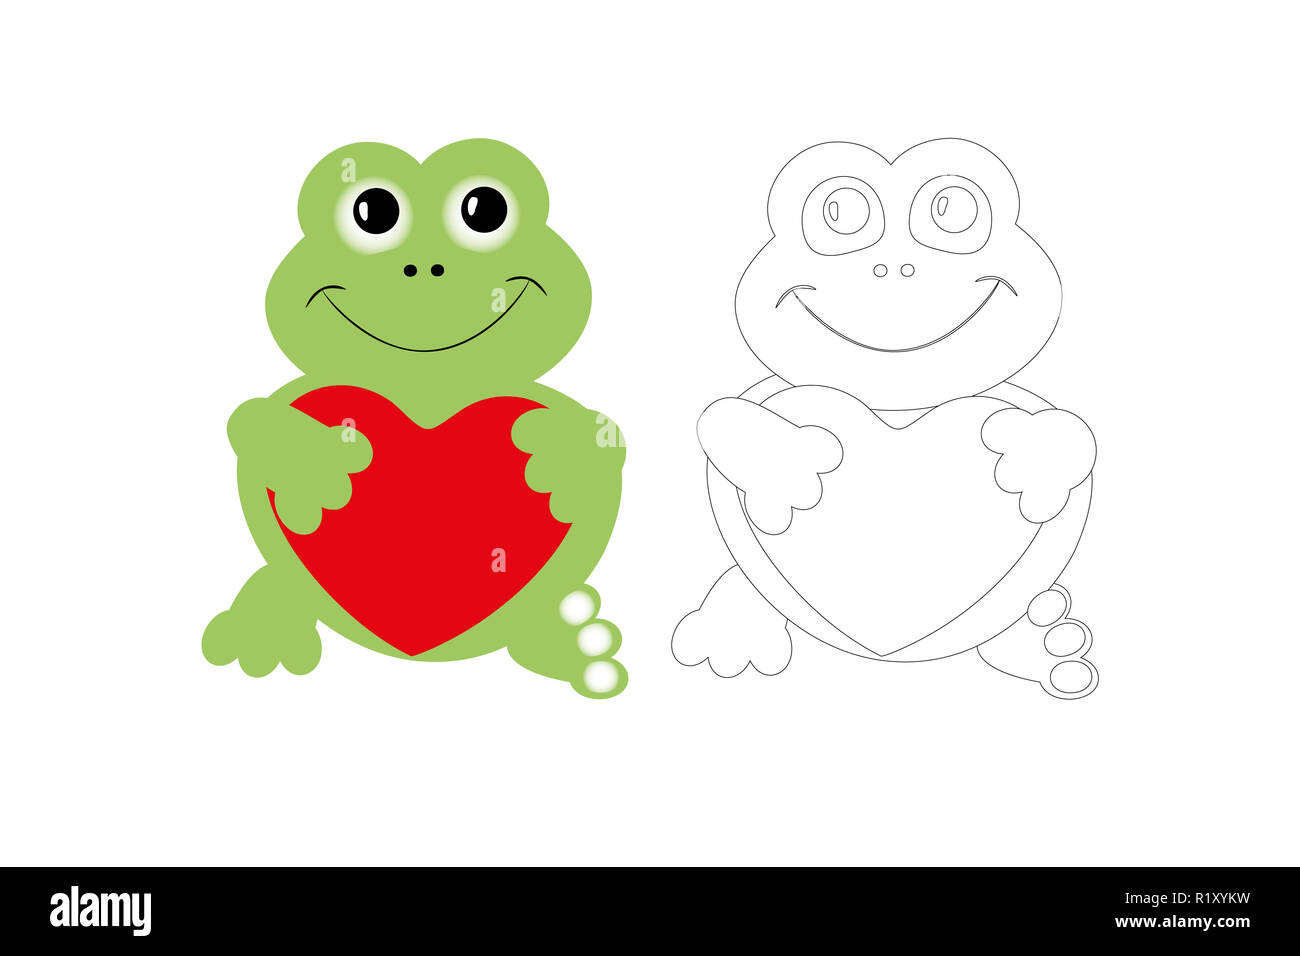 photograph relating to Printable Frog called Coloring site of lovable frog with colourful pattern, printable